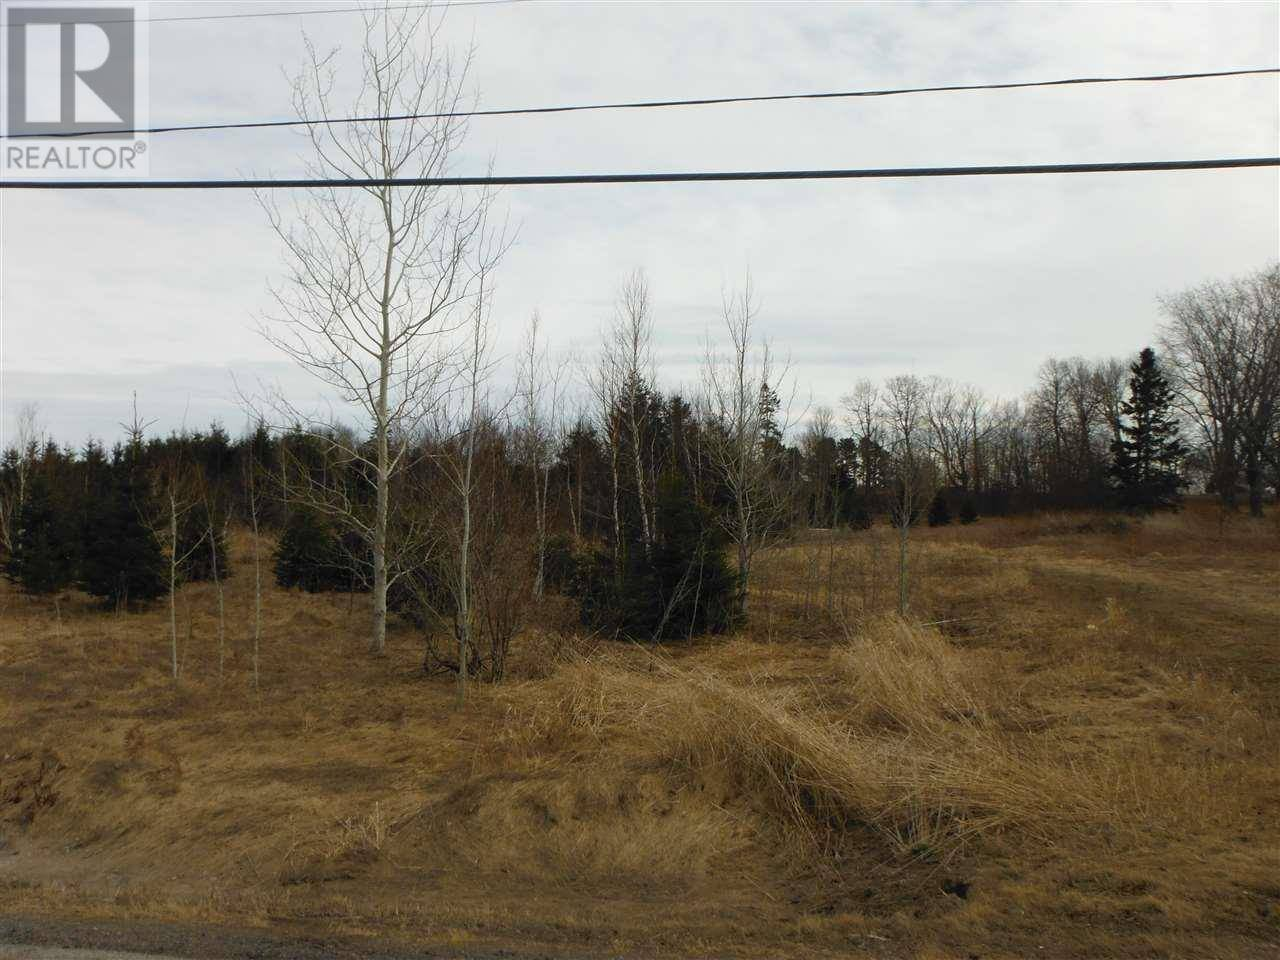 Residential property for sale at 16 Royalty Junction Rd Unit 1 Charlottetown Prince Edward Island - MLS: 202006111